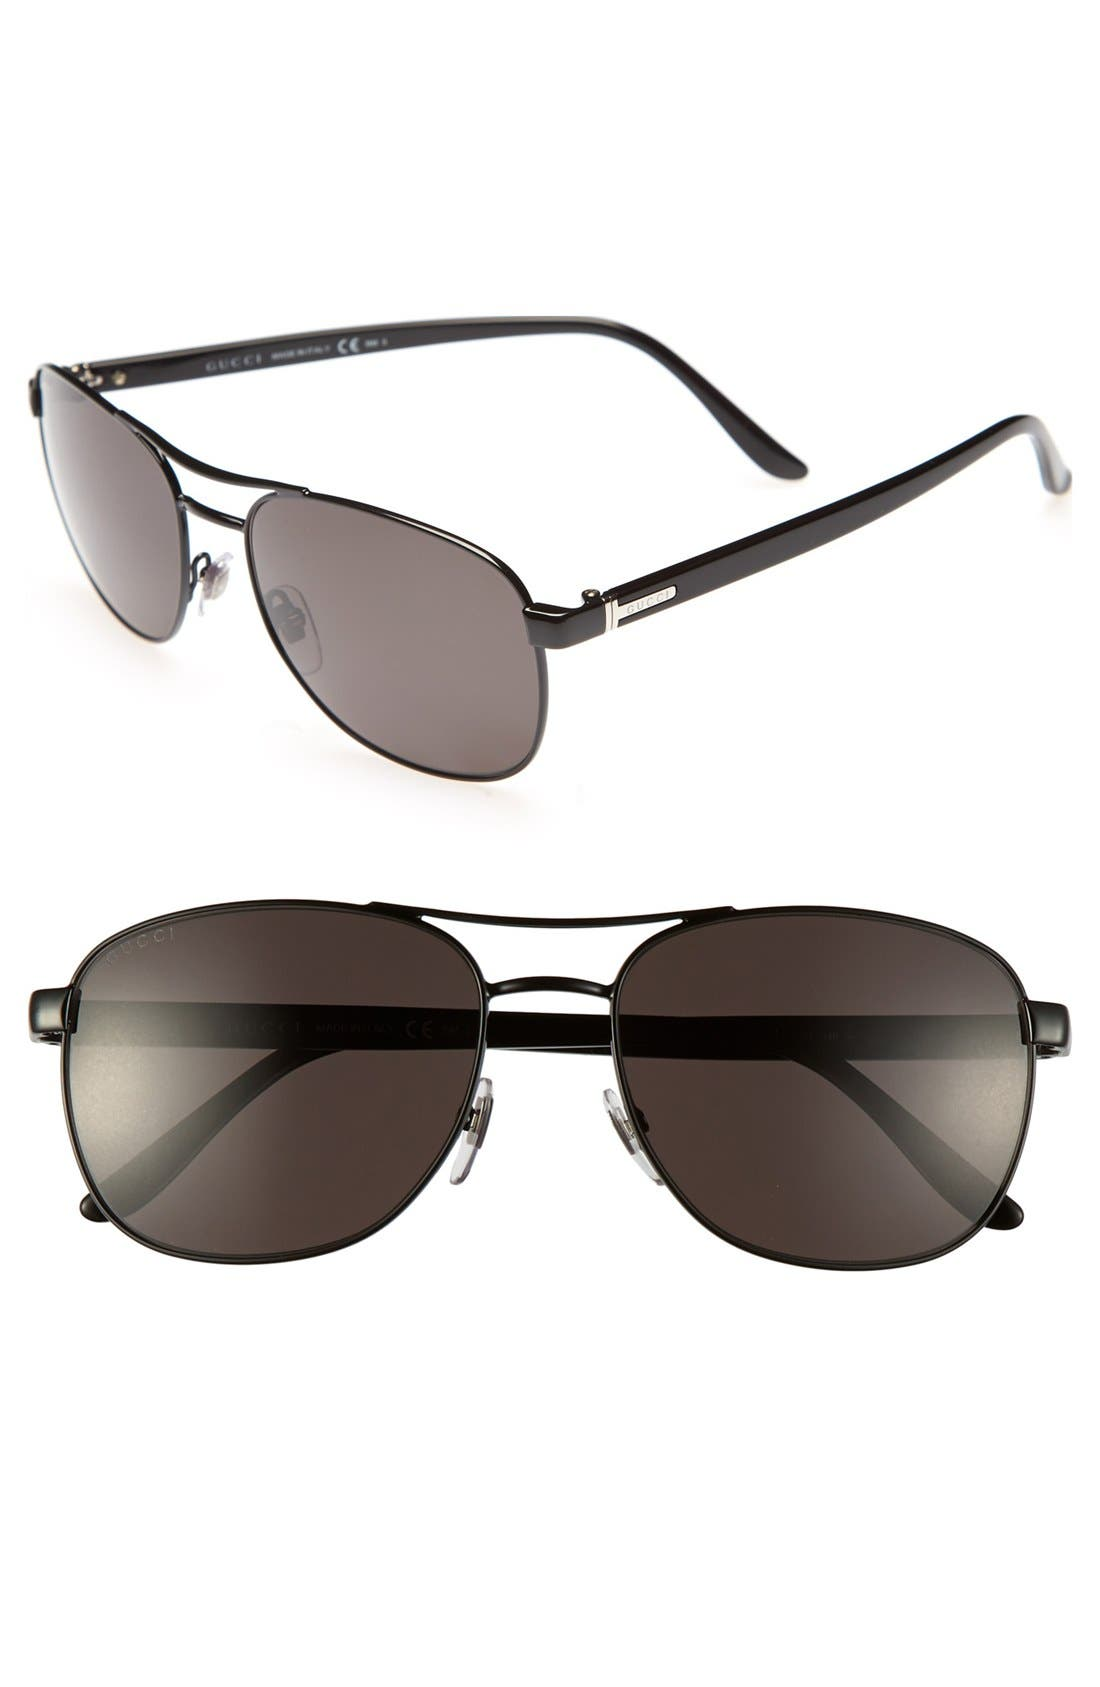 Alternate Image 1 Selected - Gucci 'Caravan' 57mm Polarized Sunglasses